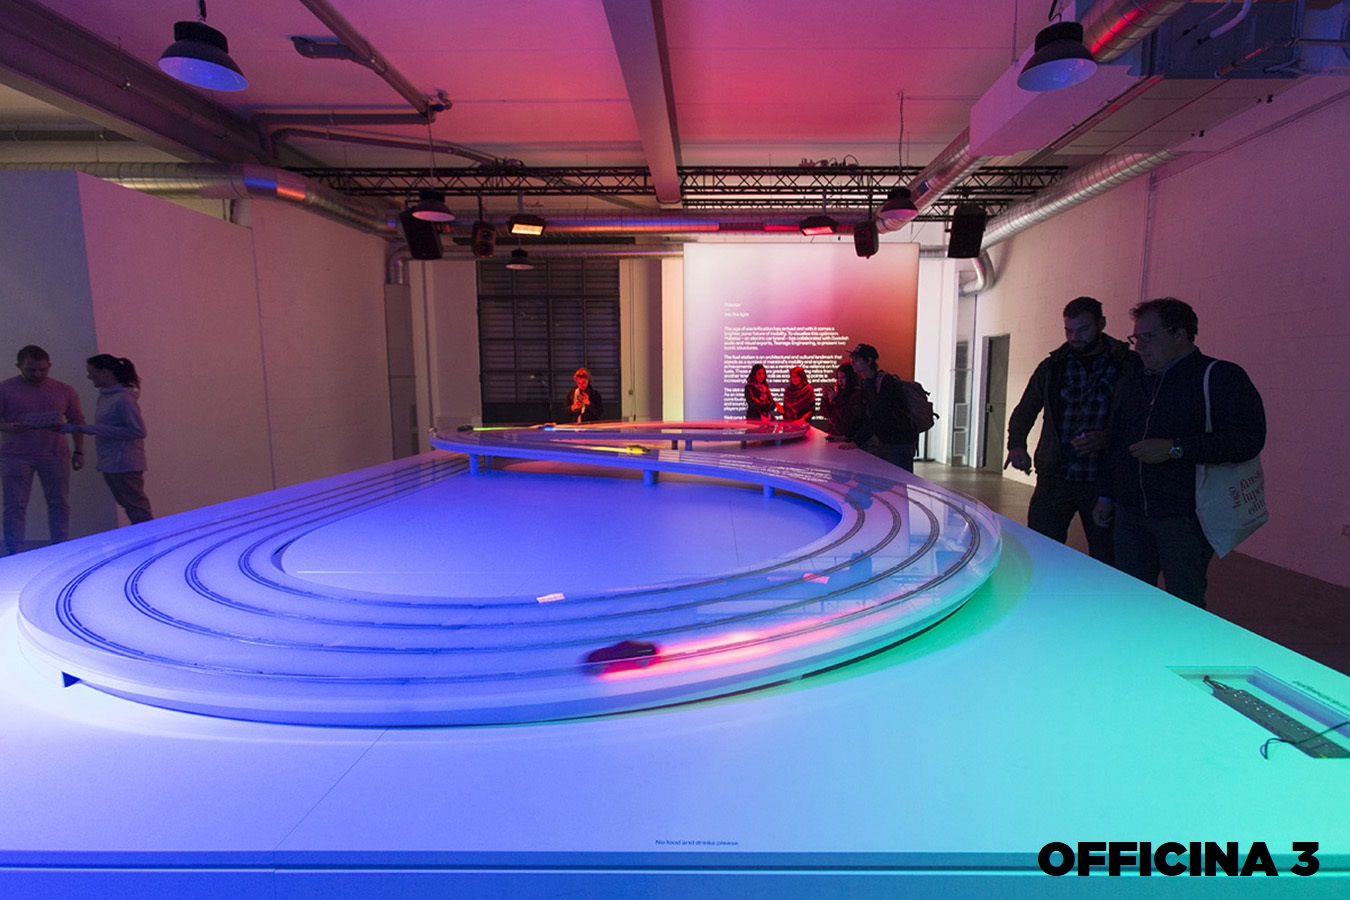 Opificio 31-Officine Cova - Officina, Open space, Showroom, Spazio outdoor di 320mq in Via Tortona 31 | location disallestita 14